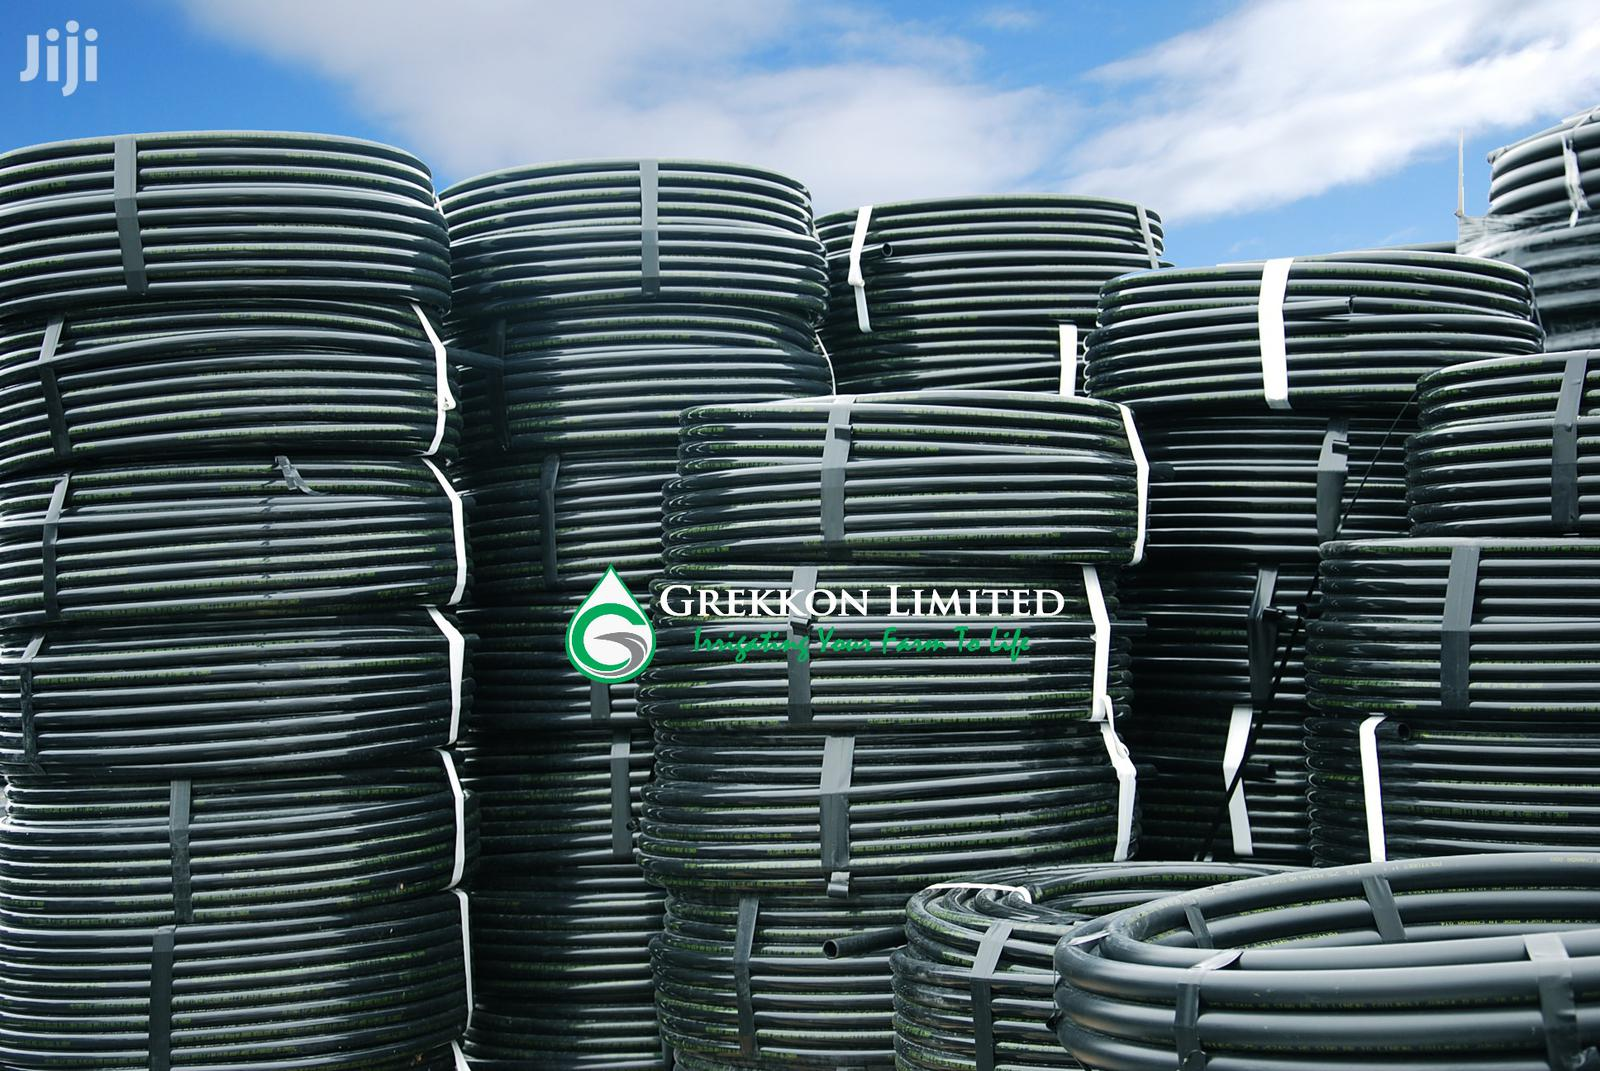 HDPE Pipes For Irrigation In Kenya